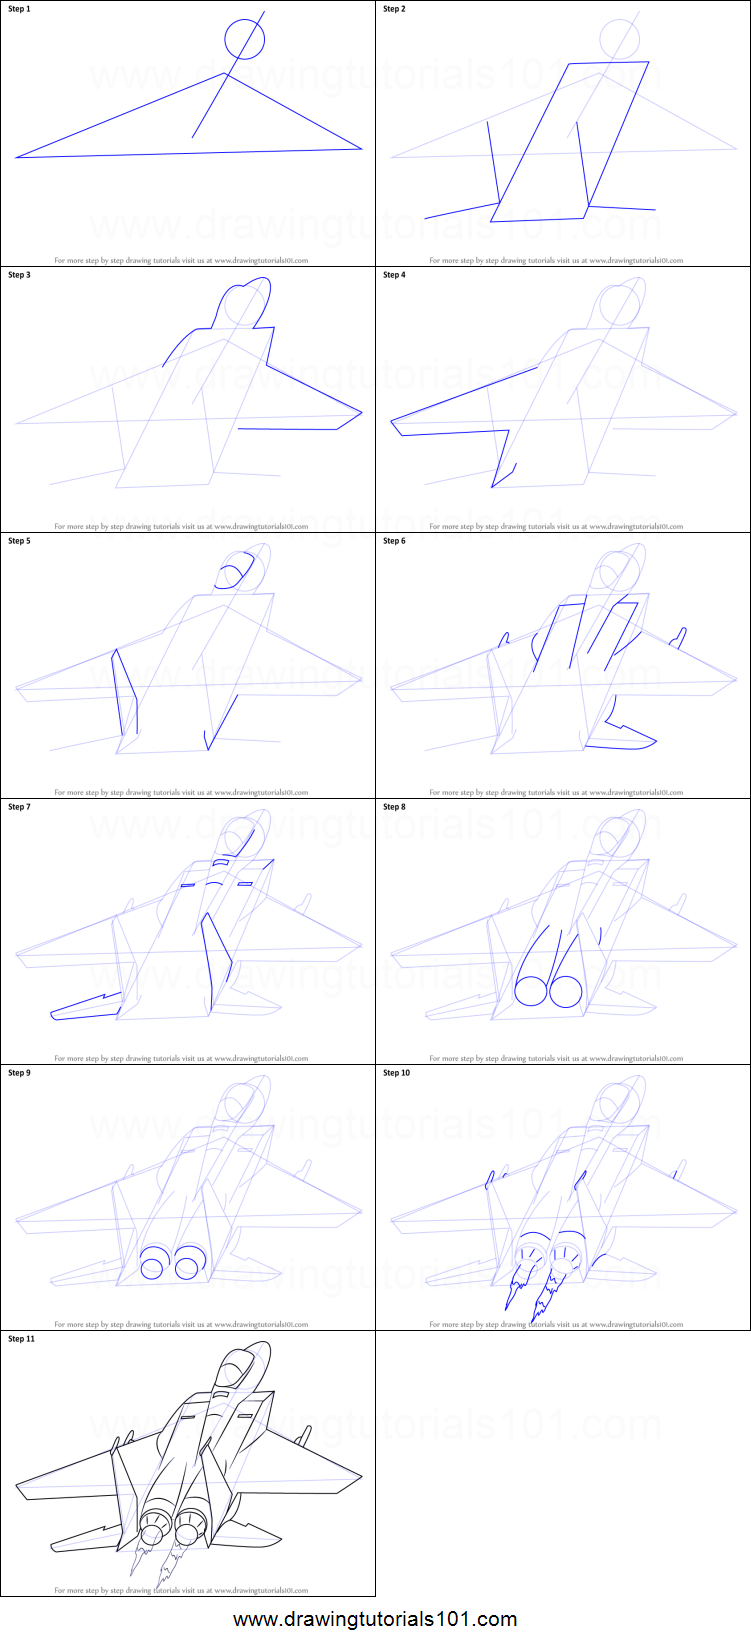 How To Draw A Jet Plane Printable Step By Step Drawing Sheet Drawingtutorials101 Com